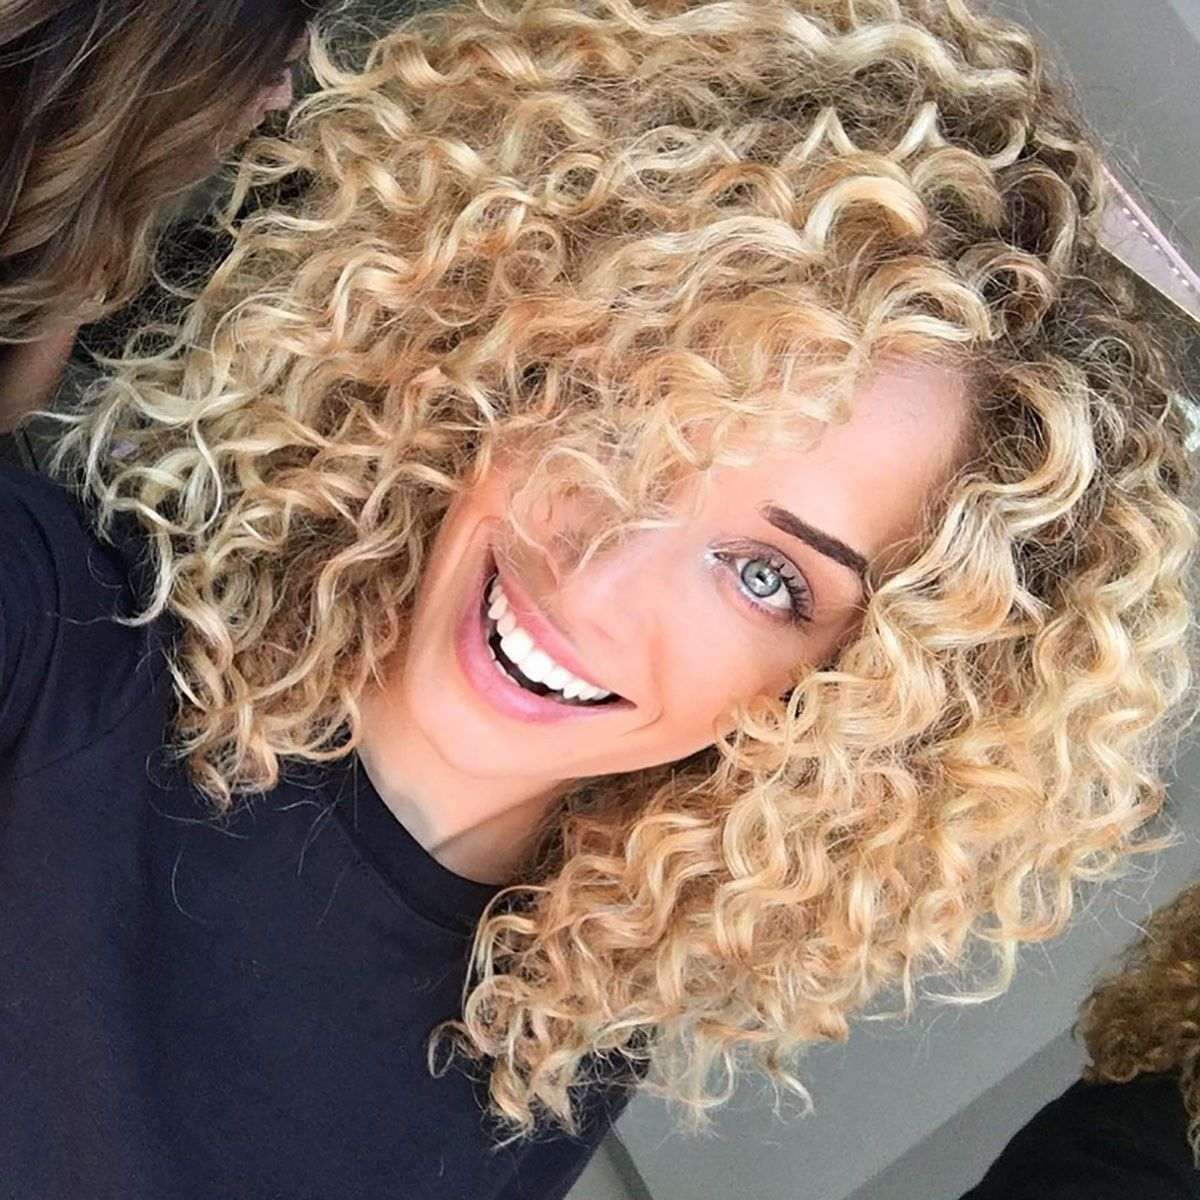 Buy Livin' Large Curly Edition from Devacurl, hair